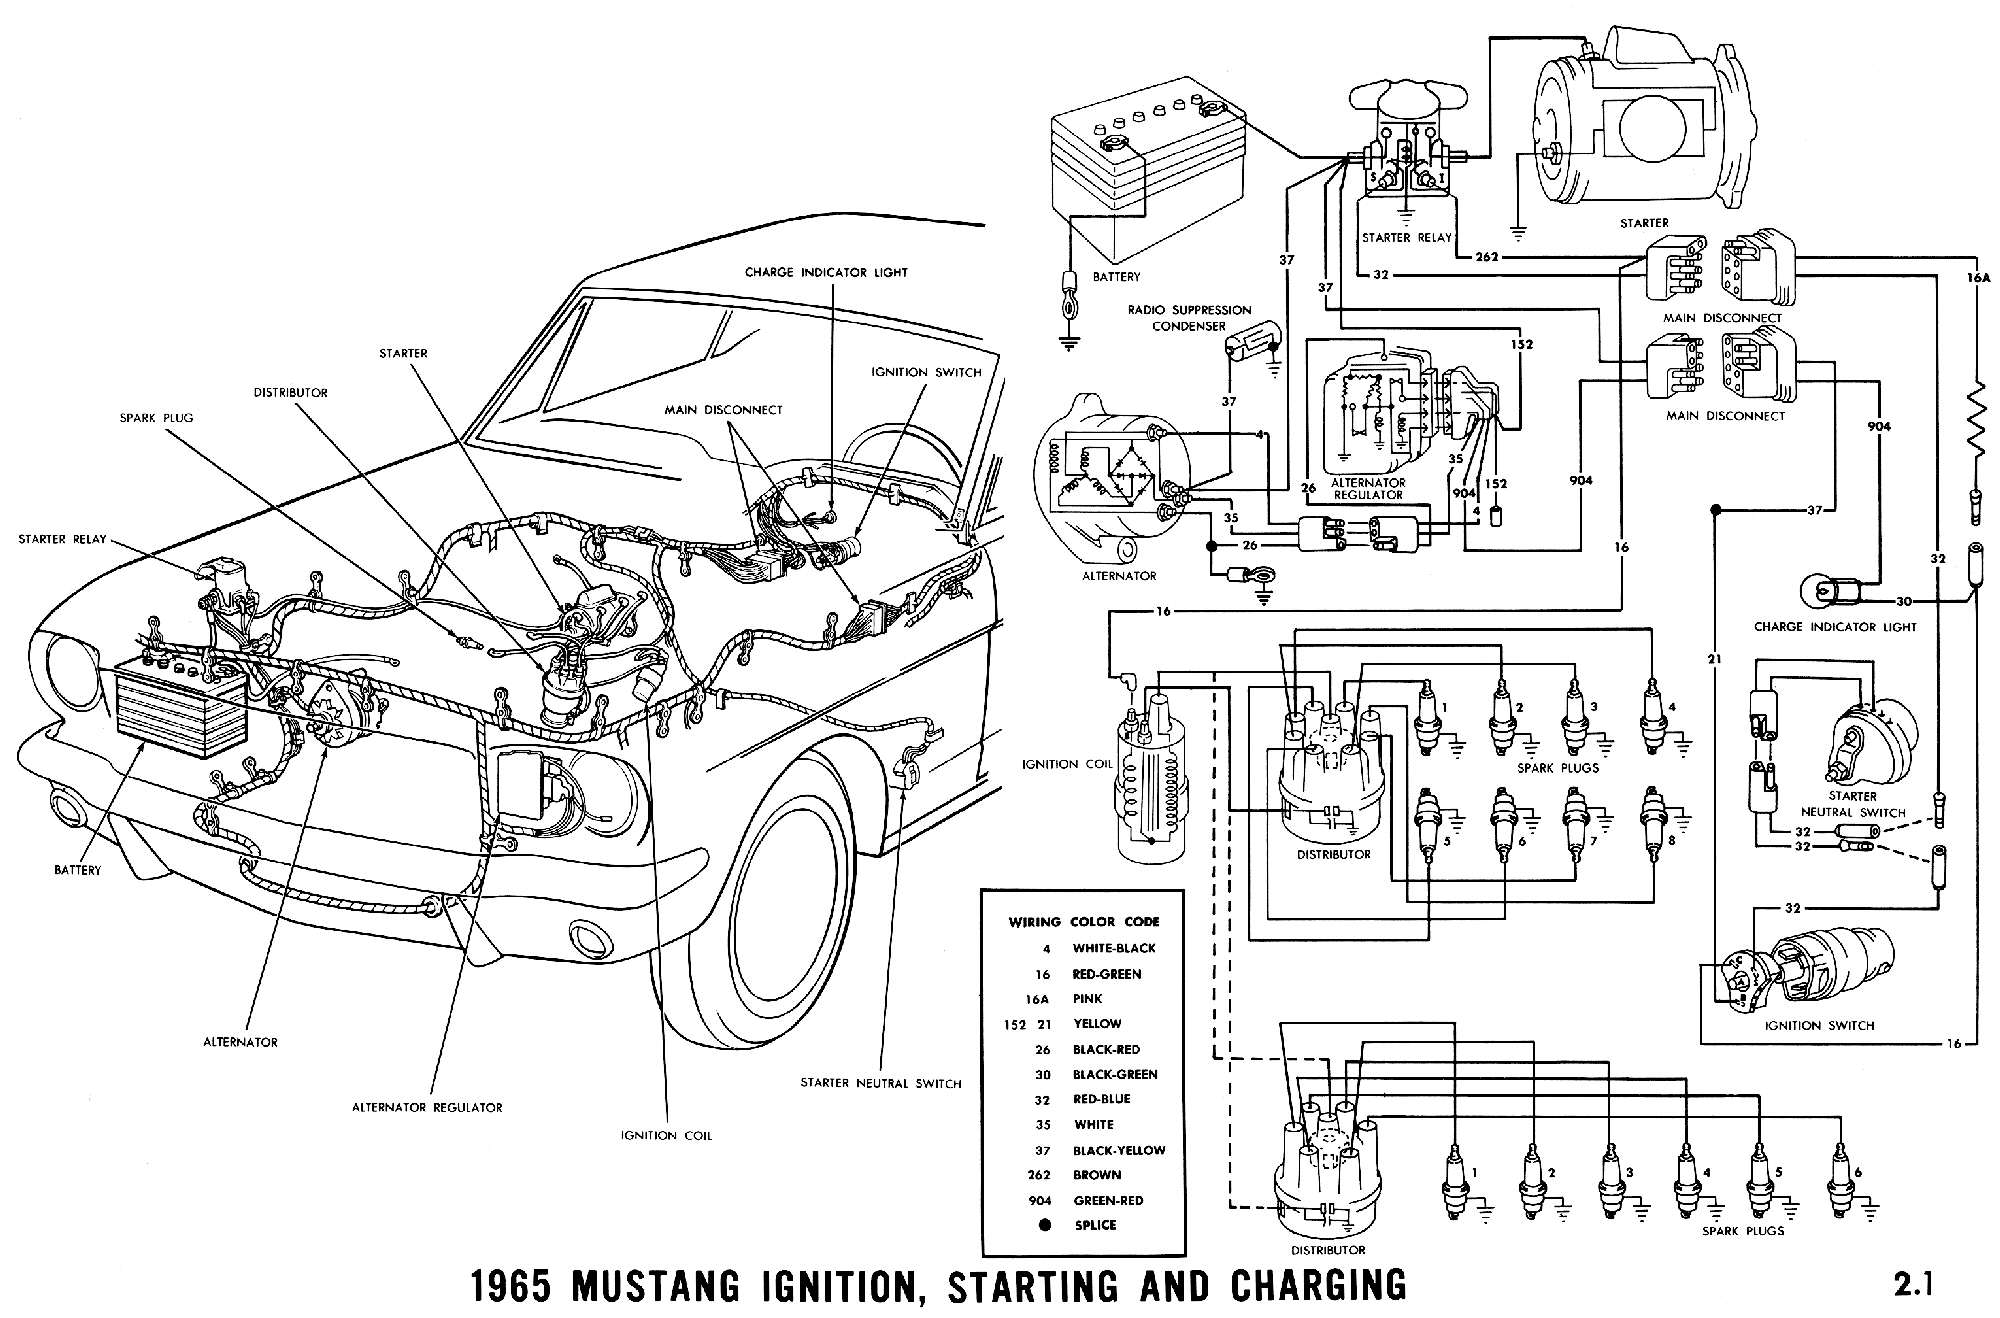 1995 mustang gt engine bay wiring diagram online wiring diagram rh 8 kaspars co